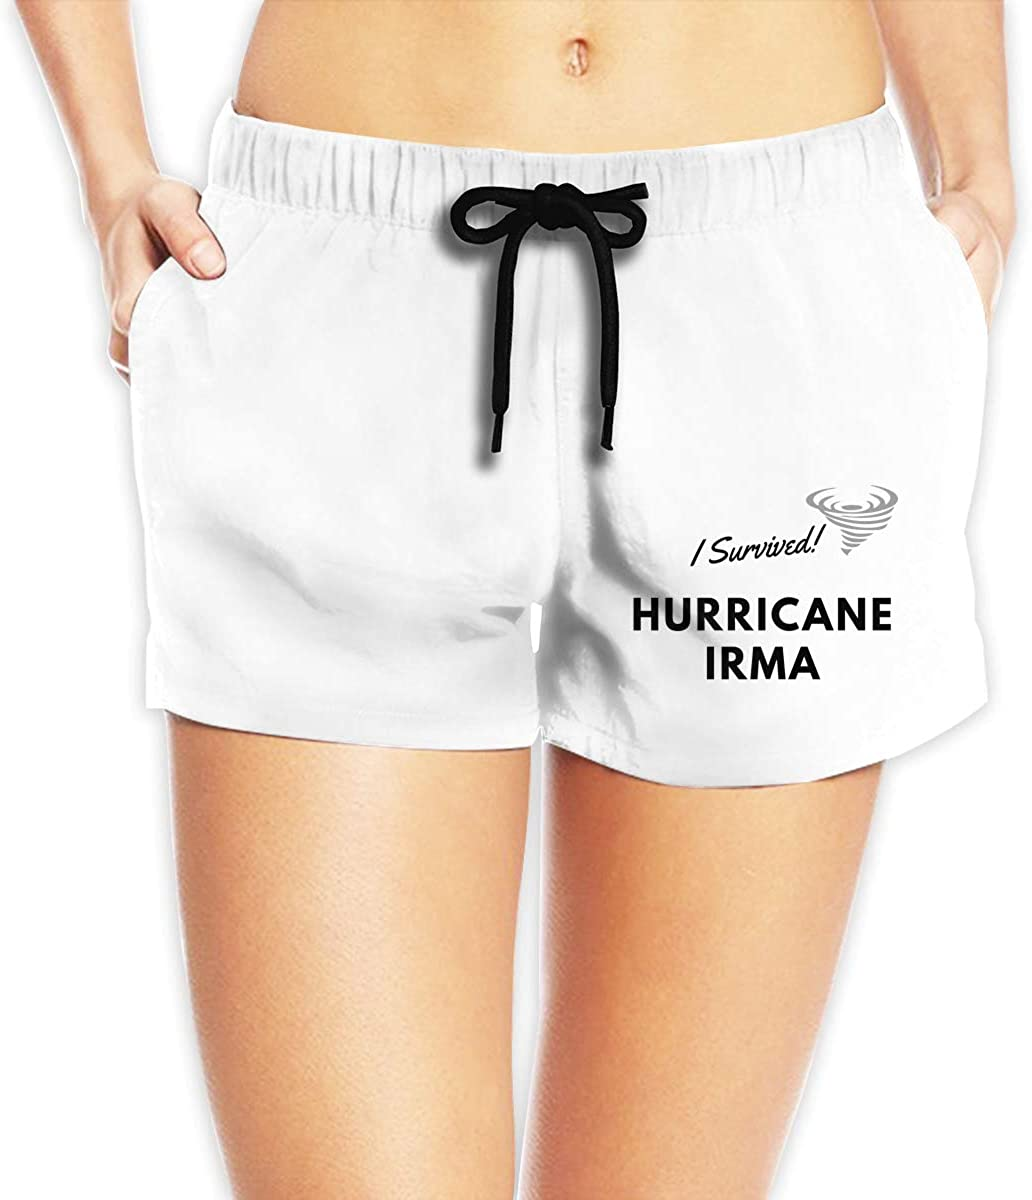 I Survived Hurricane Irma Girls Summer Casual Shorts,Beach Shorts Quick Dry Short